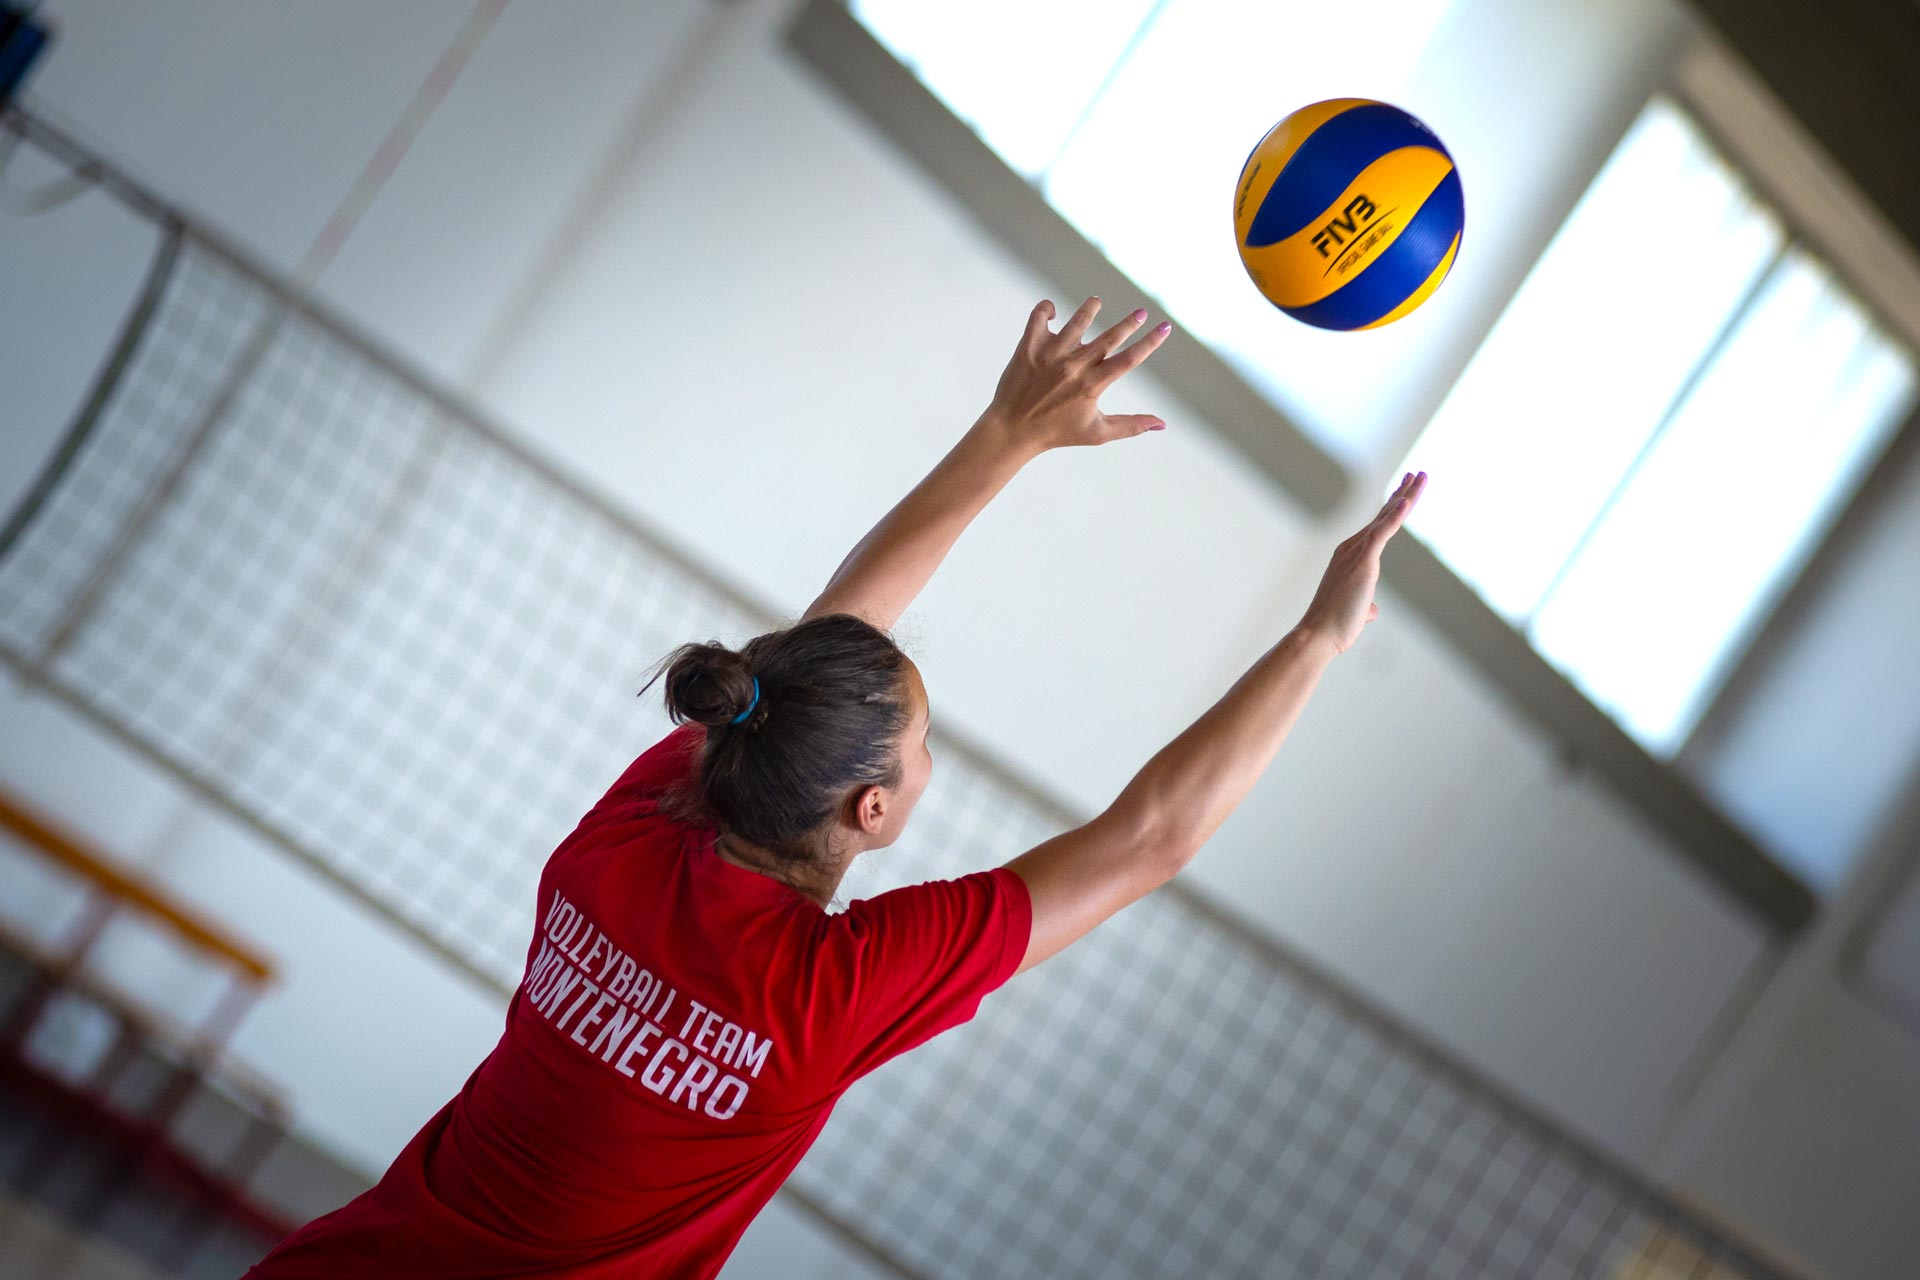 volleyball team montenegro